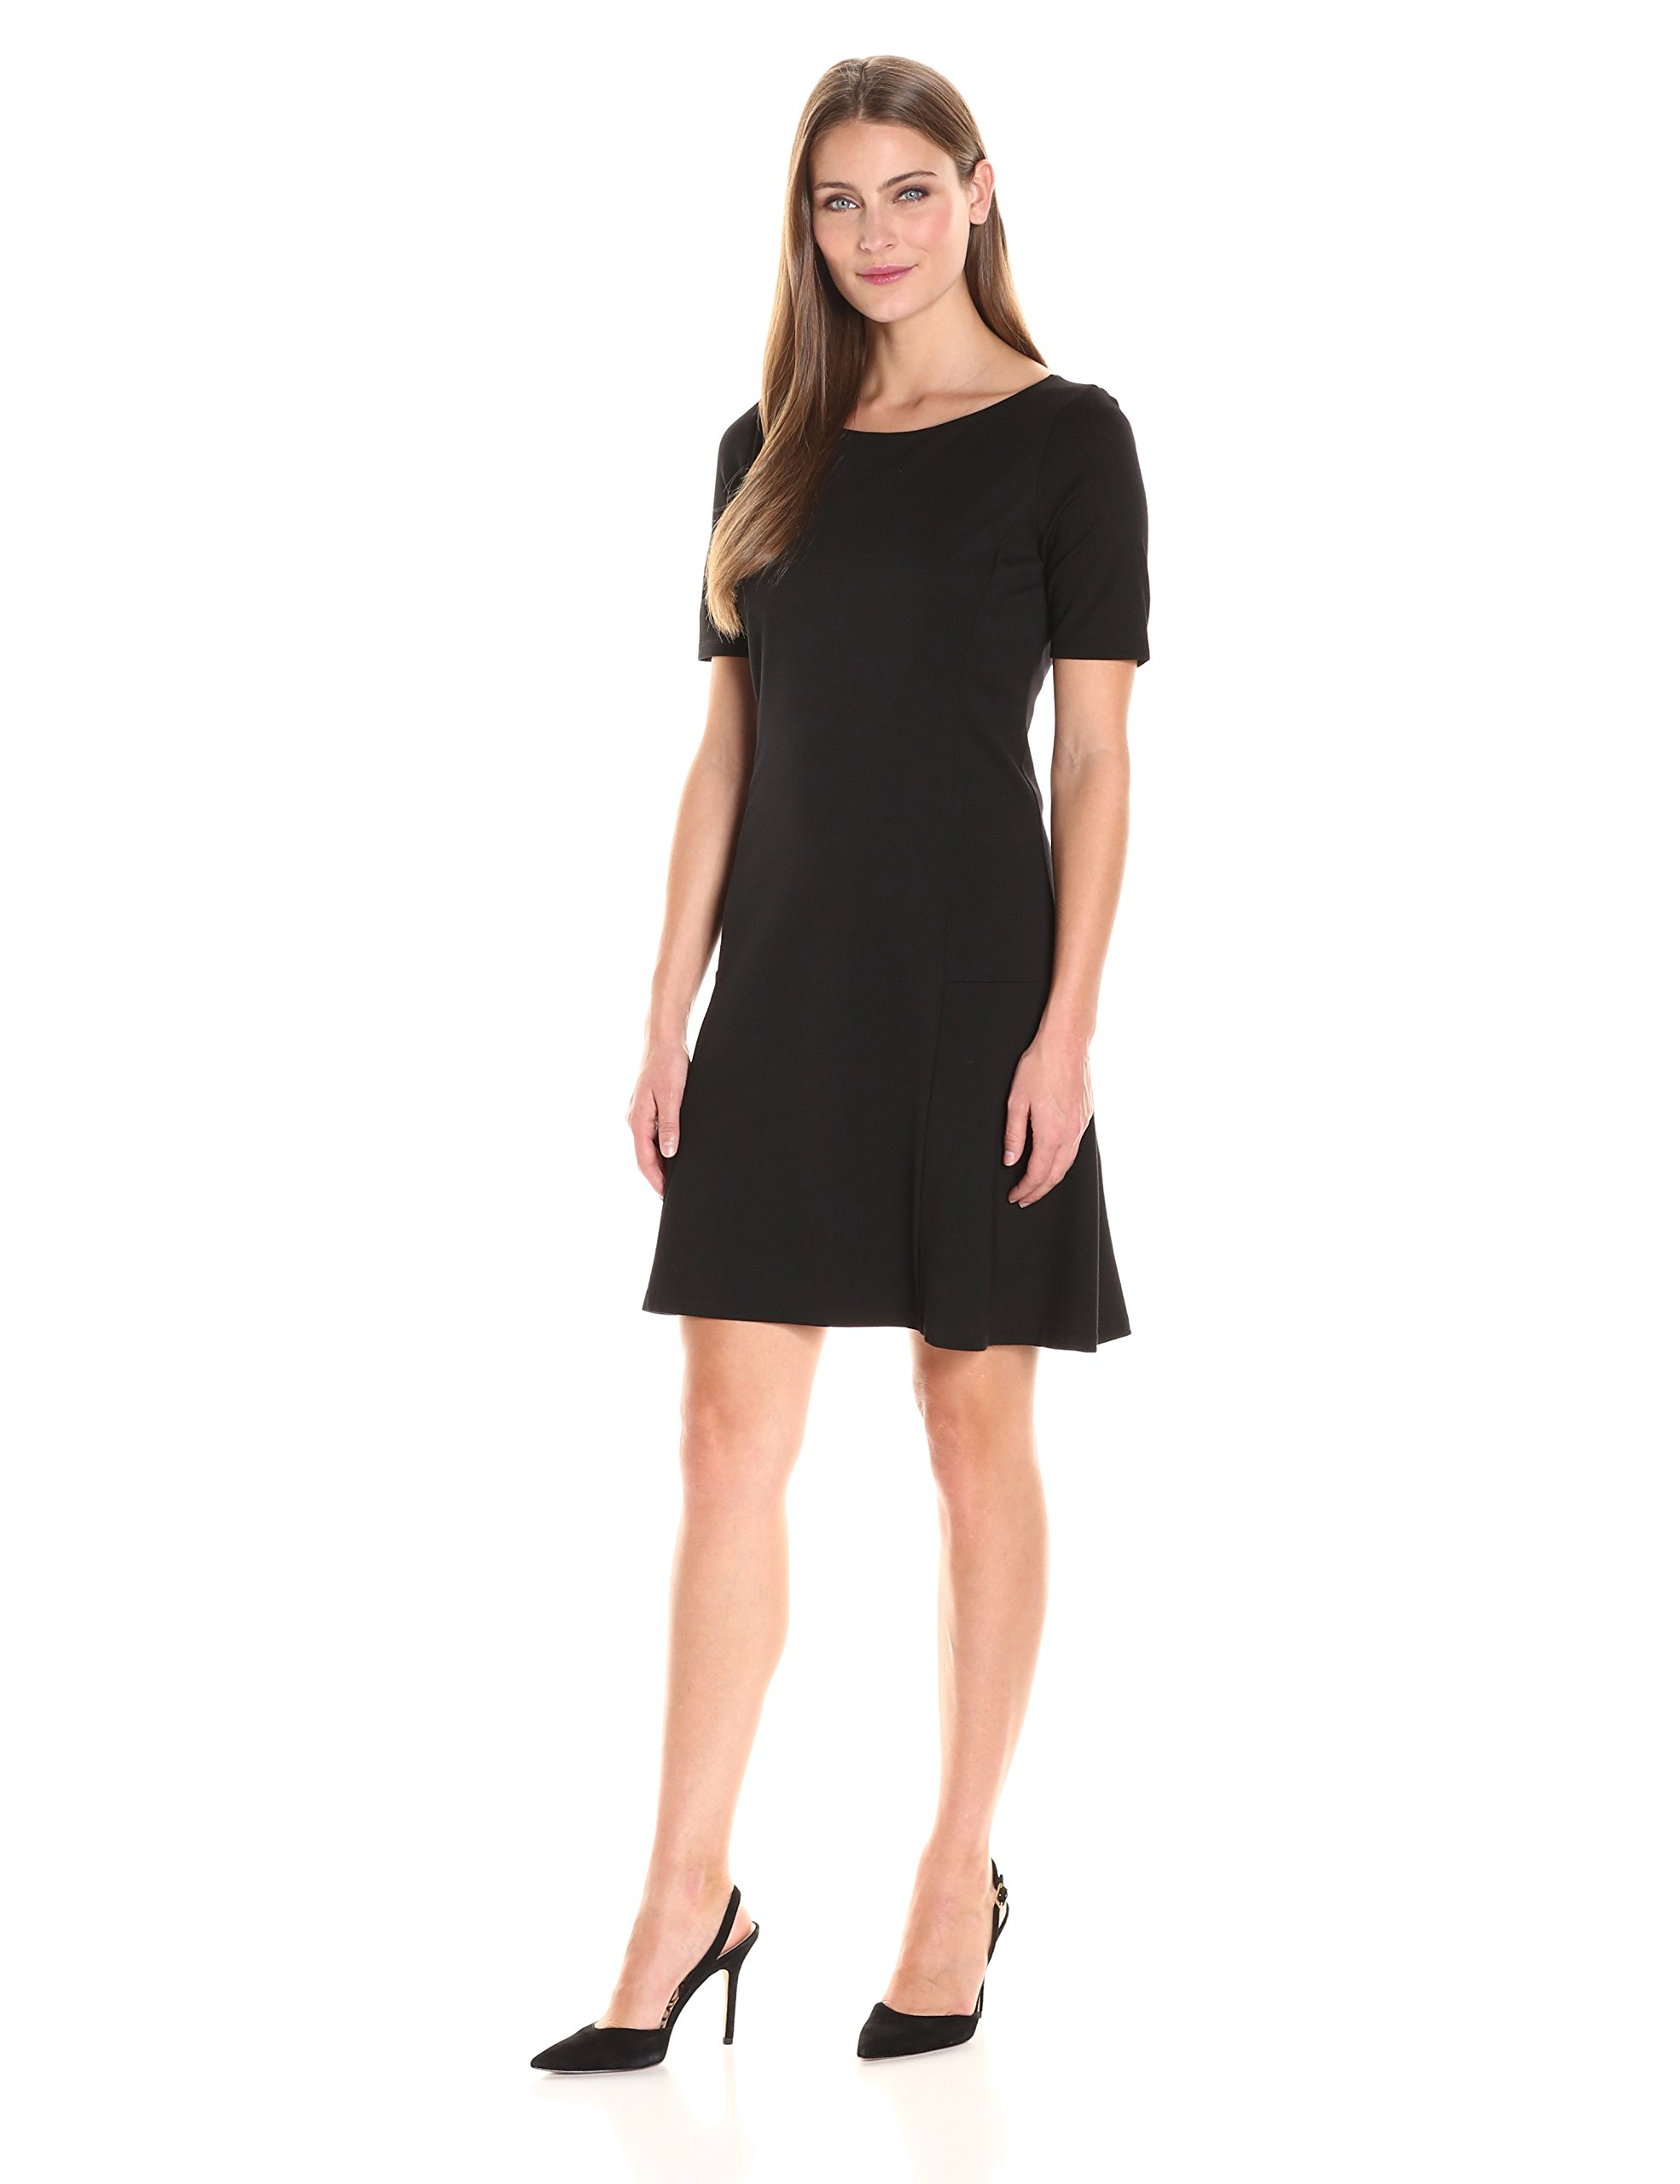 Ellen Tracy Women's Elbow Sleeve Flounce Dress, E Black, L by Ellen Tracy